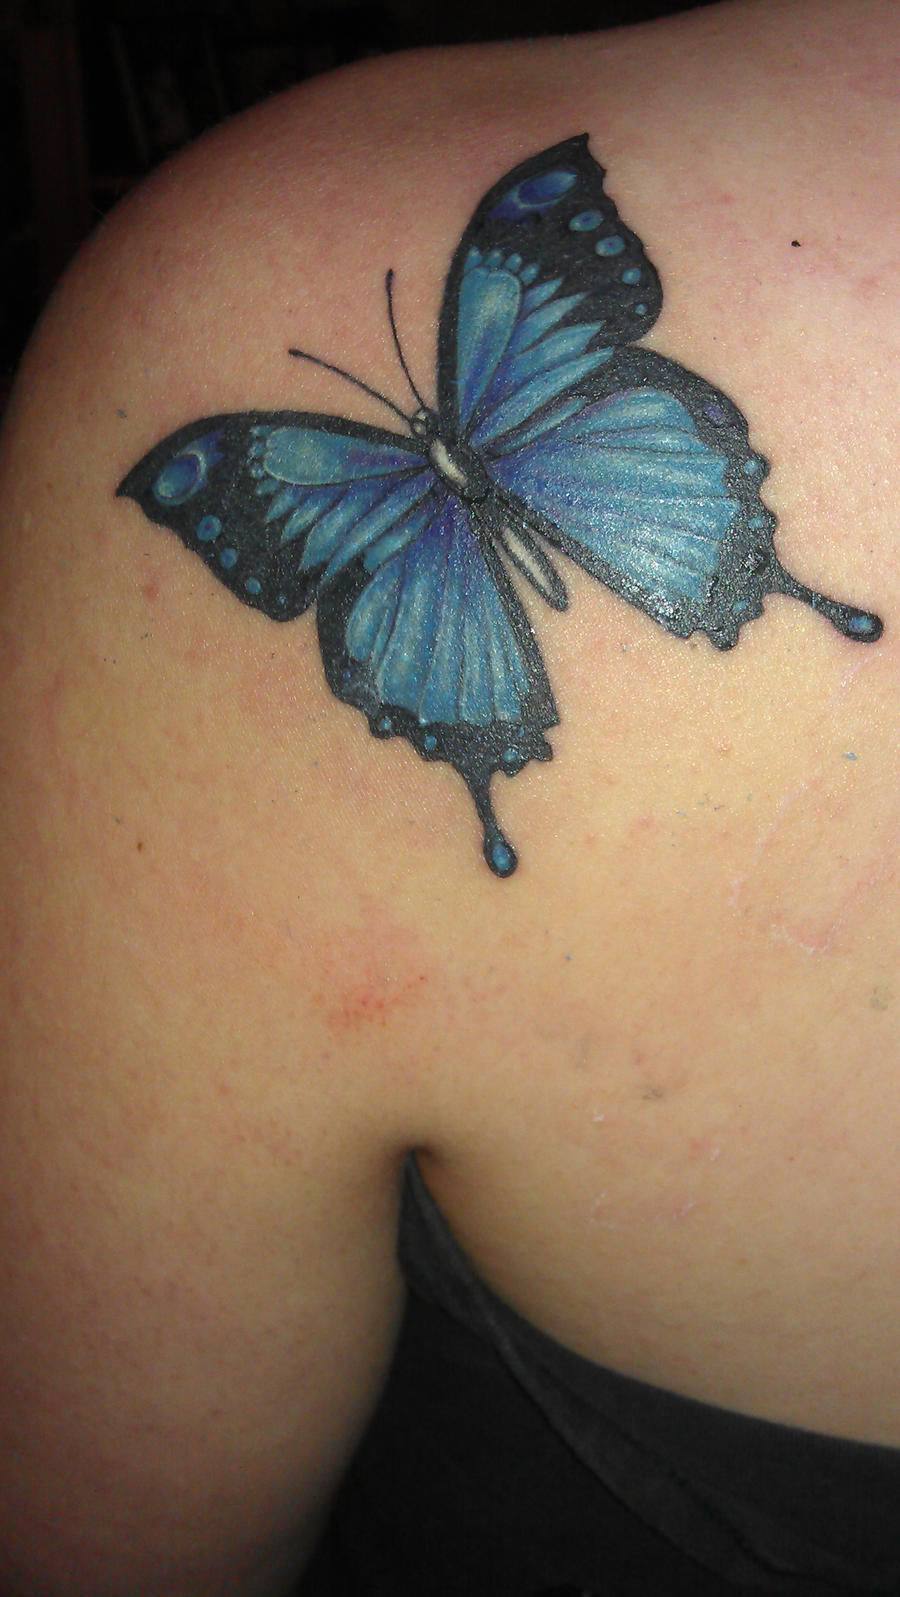 Butterfly flying away tattoos - photo#8